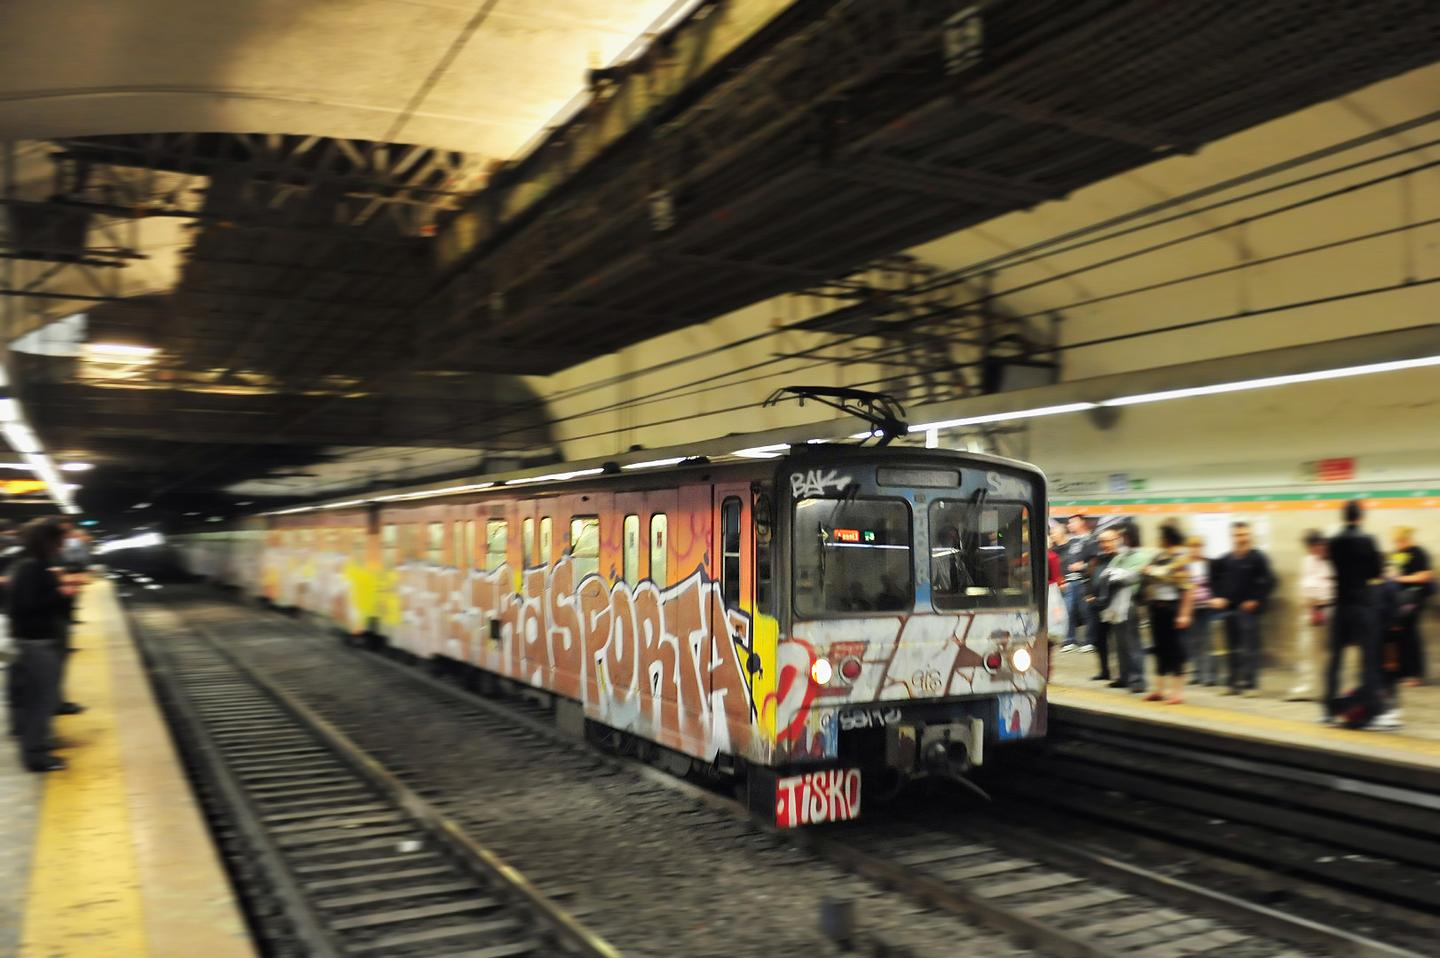 Mousetrap technology is being used to stop graffiti vandalism of trains (Photo: Shutterstock)